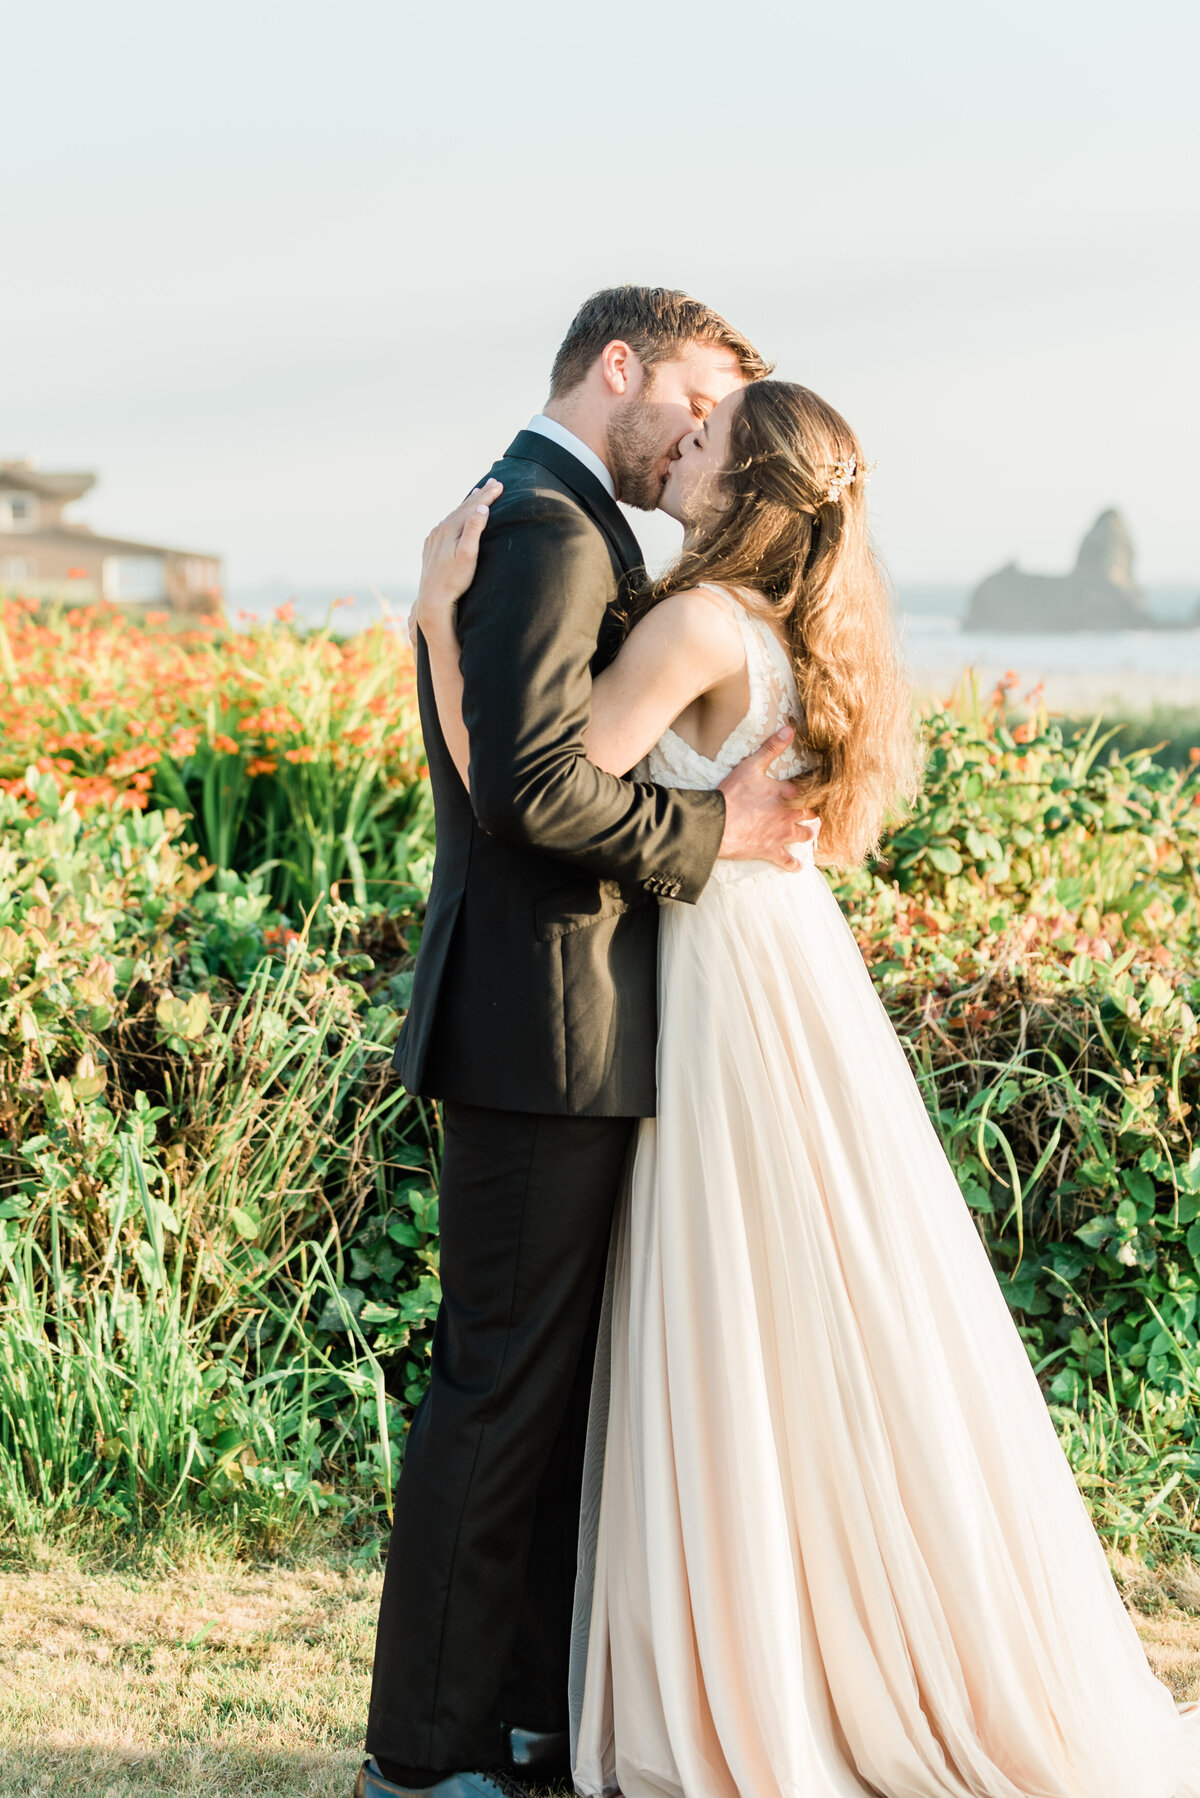 Cannon-Beach-Elopement-Photographer-25